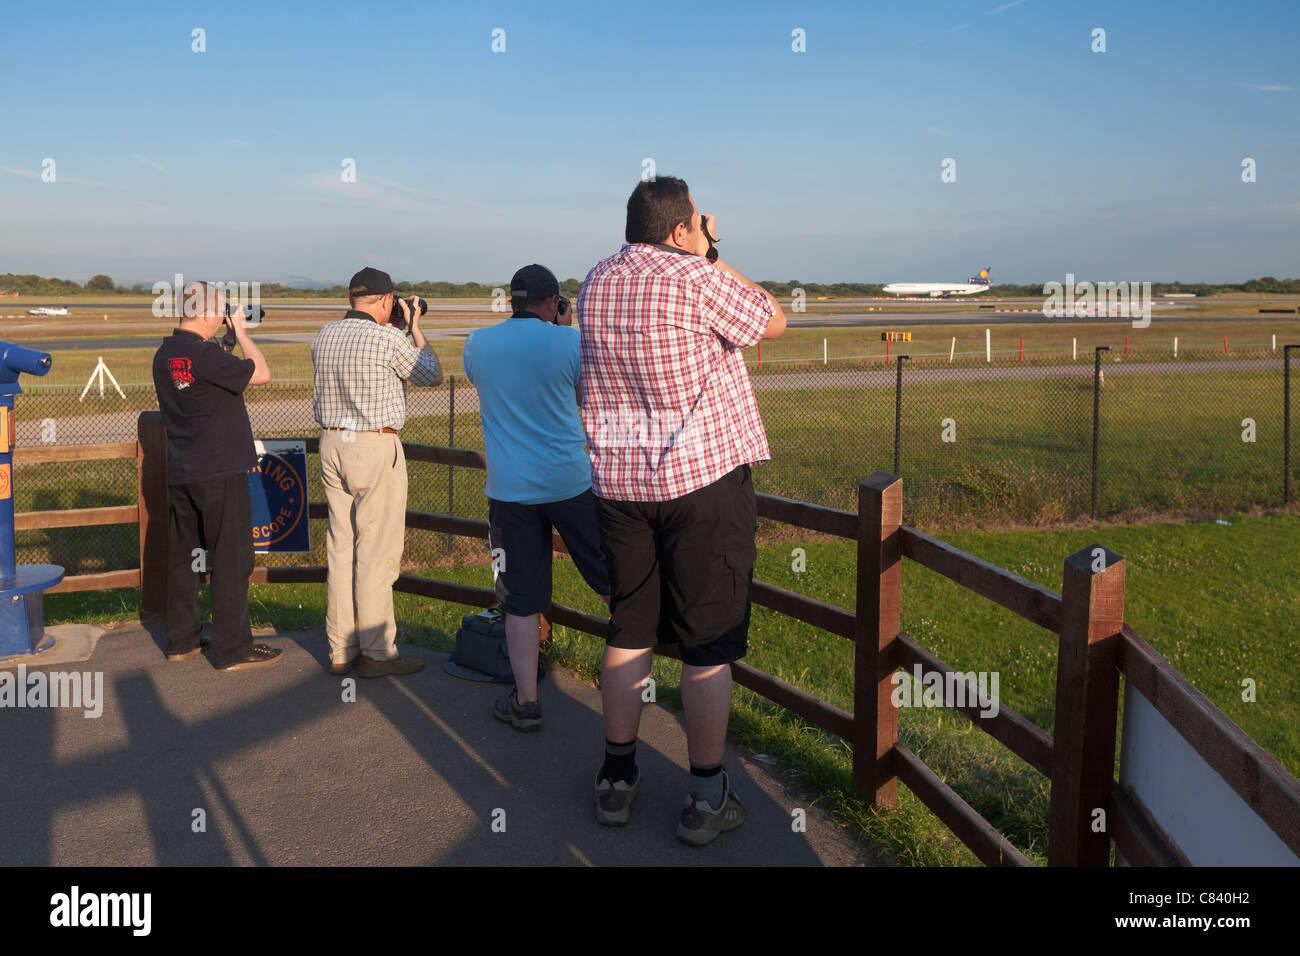 Plane spotters, Manchester, England - Stock Image